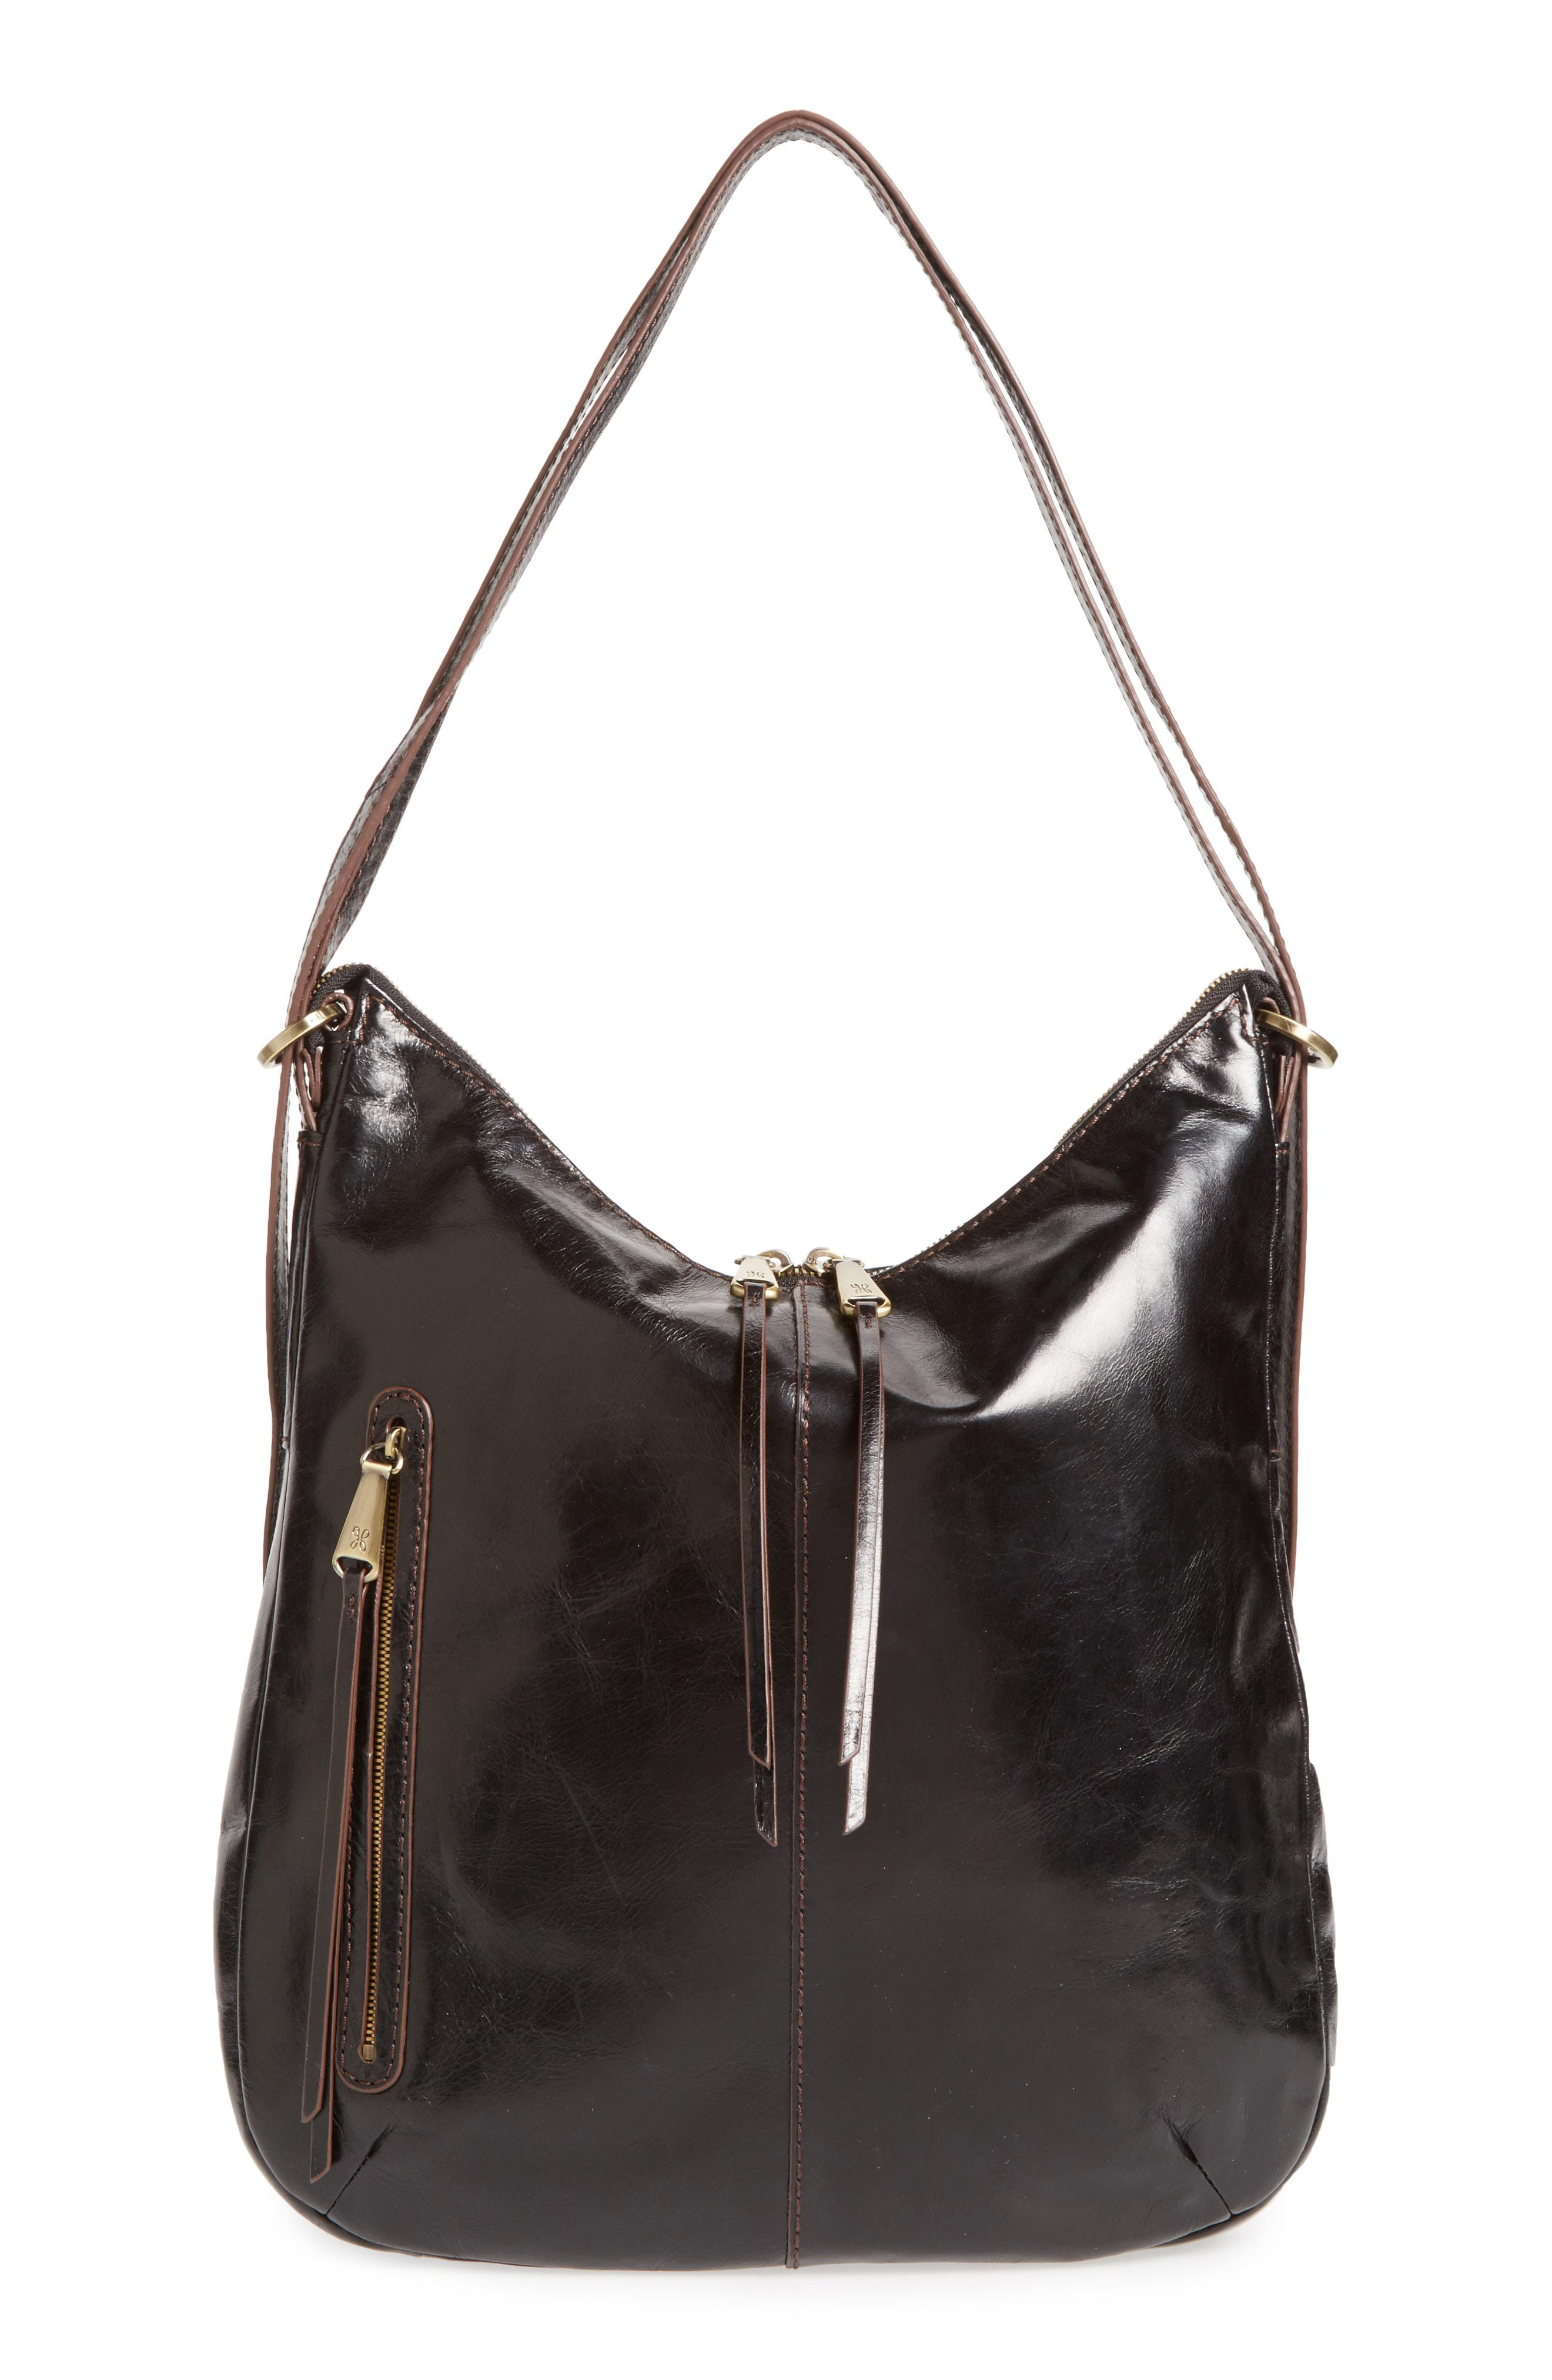 2865a66218 Lyst - Hobo Merrin Leather Backpack in Black - Save 7%